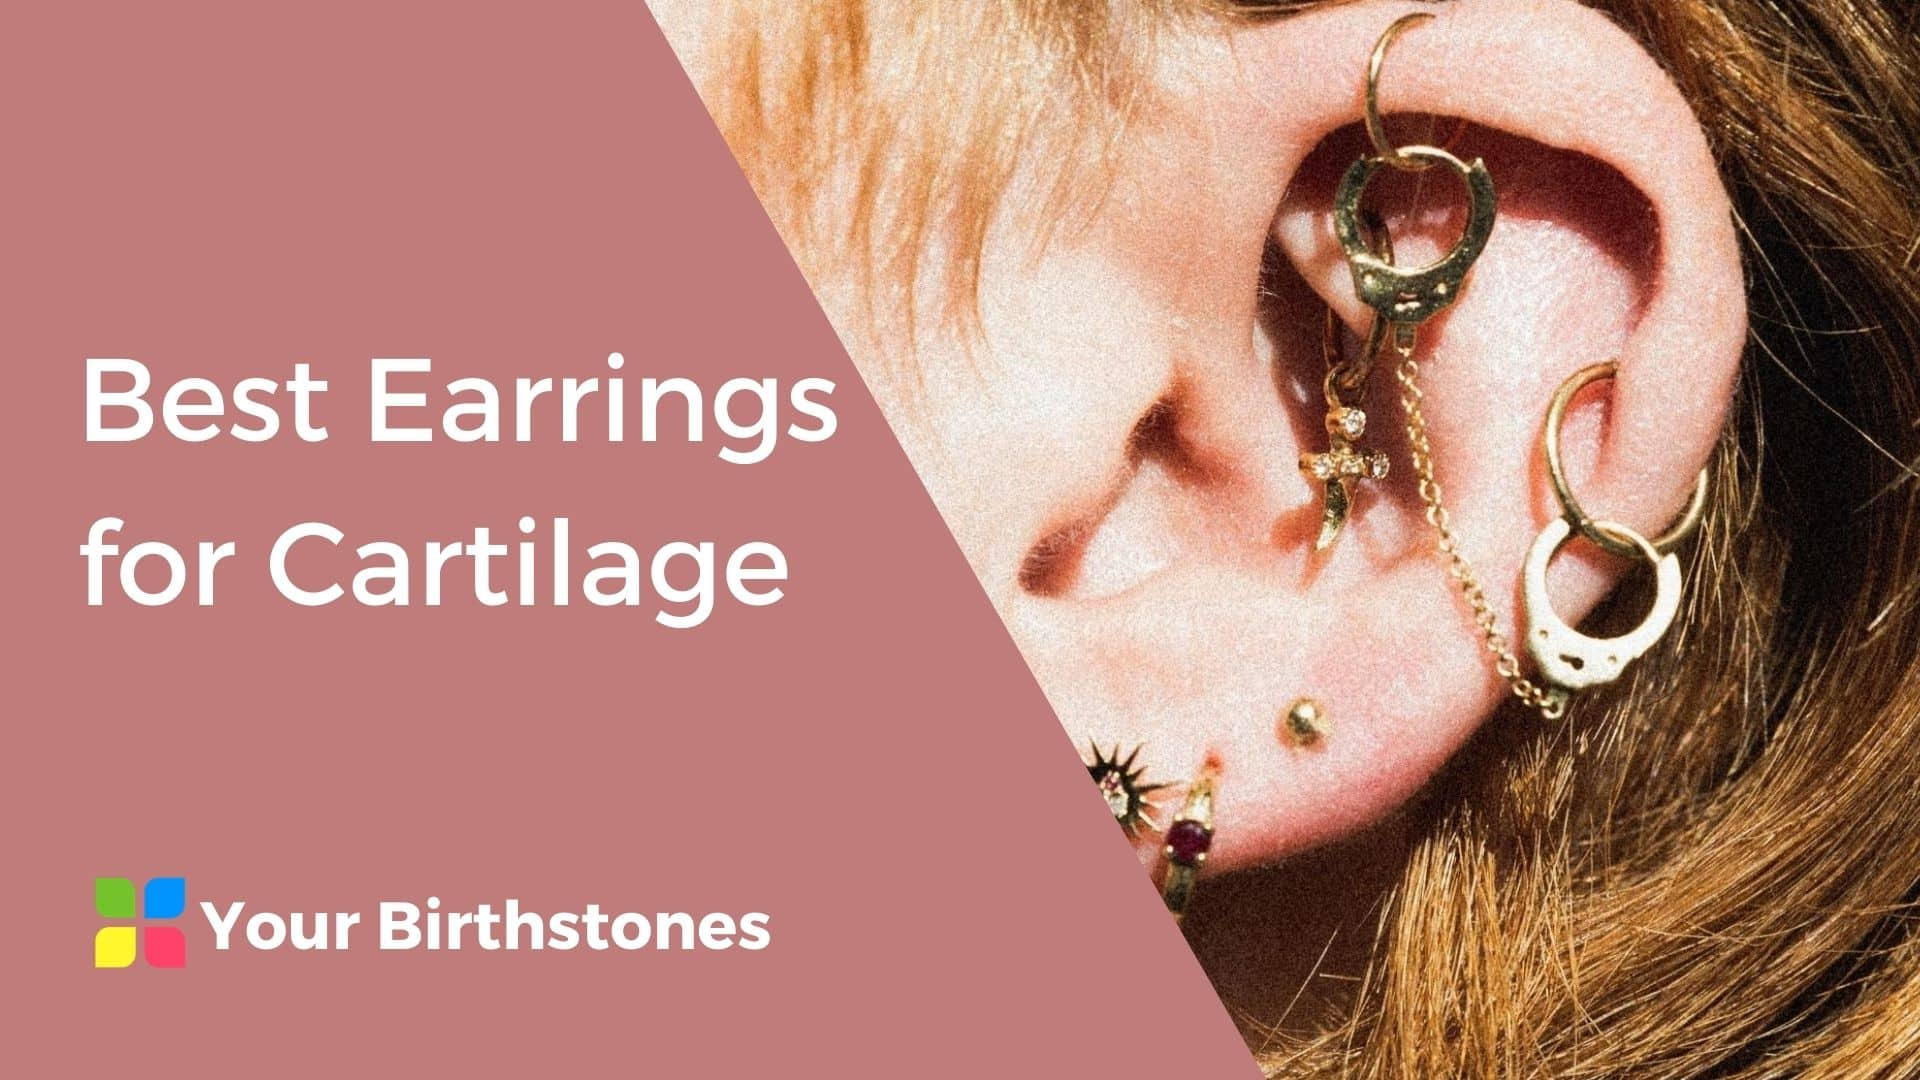 Best Earrings for Cartilage